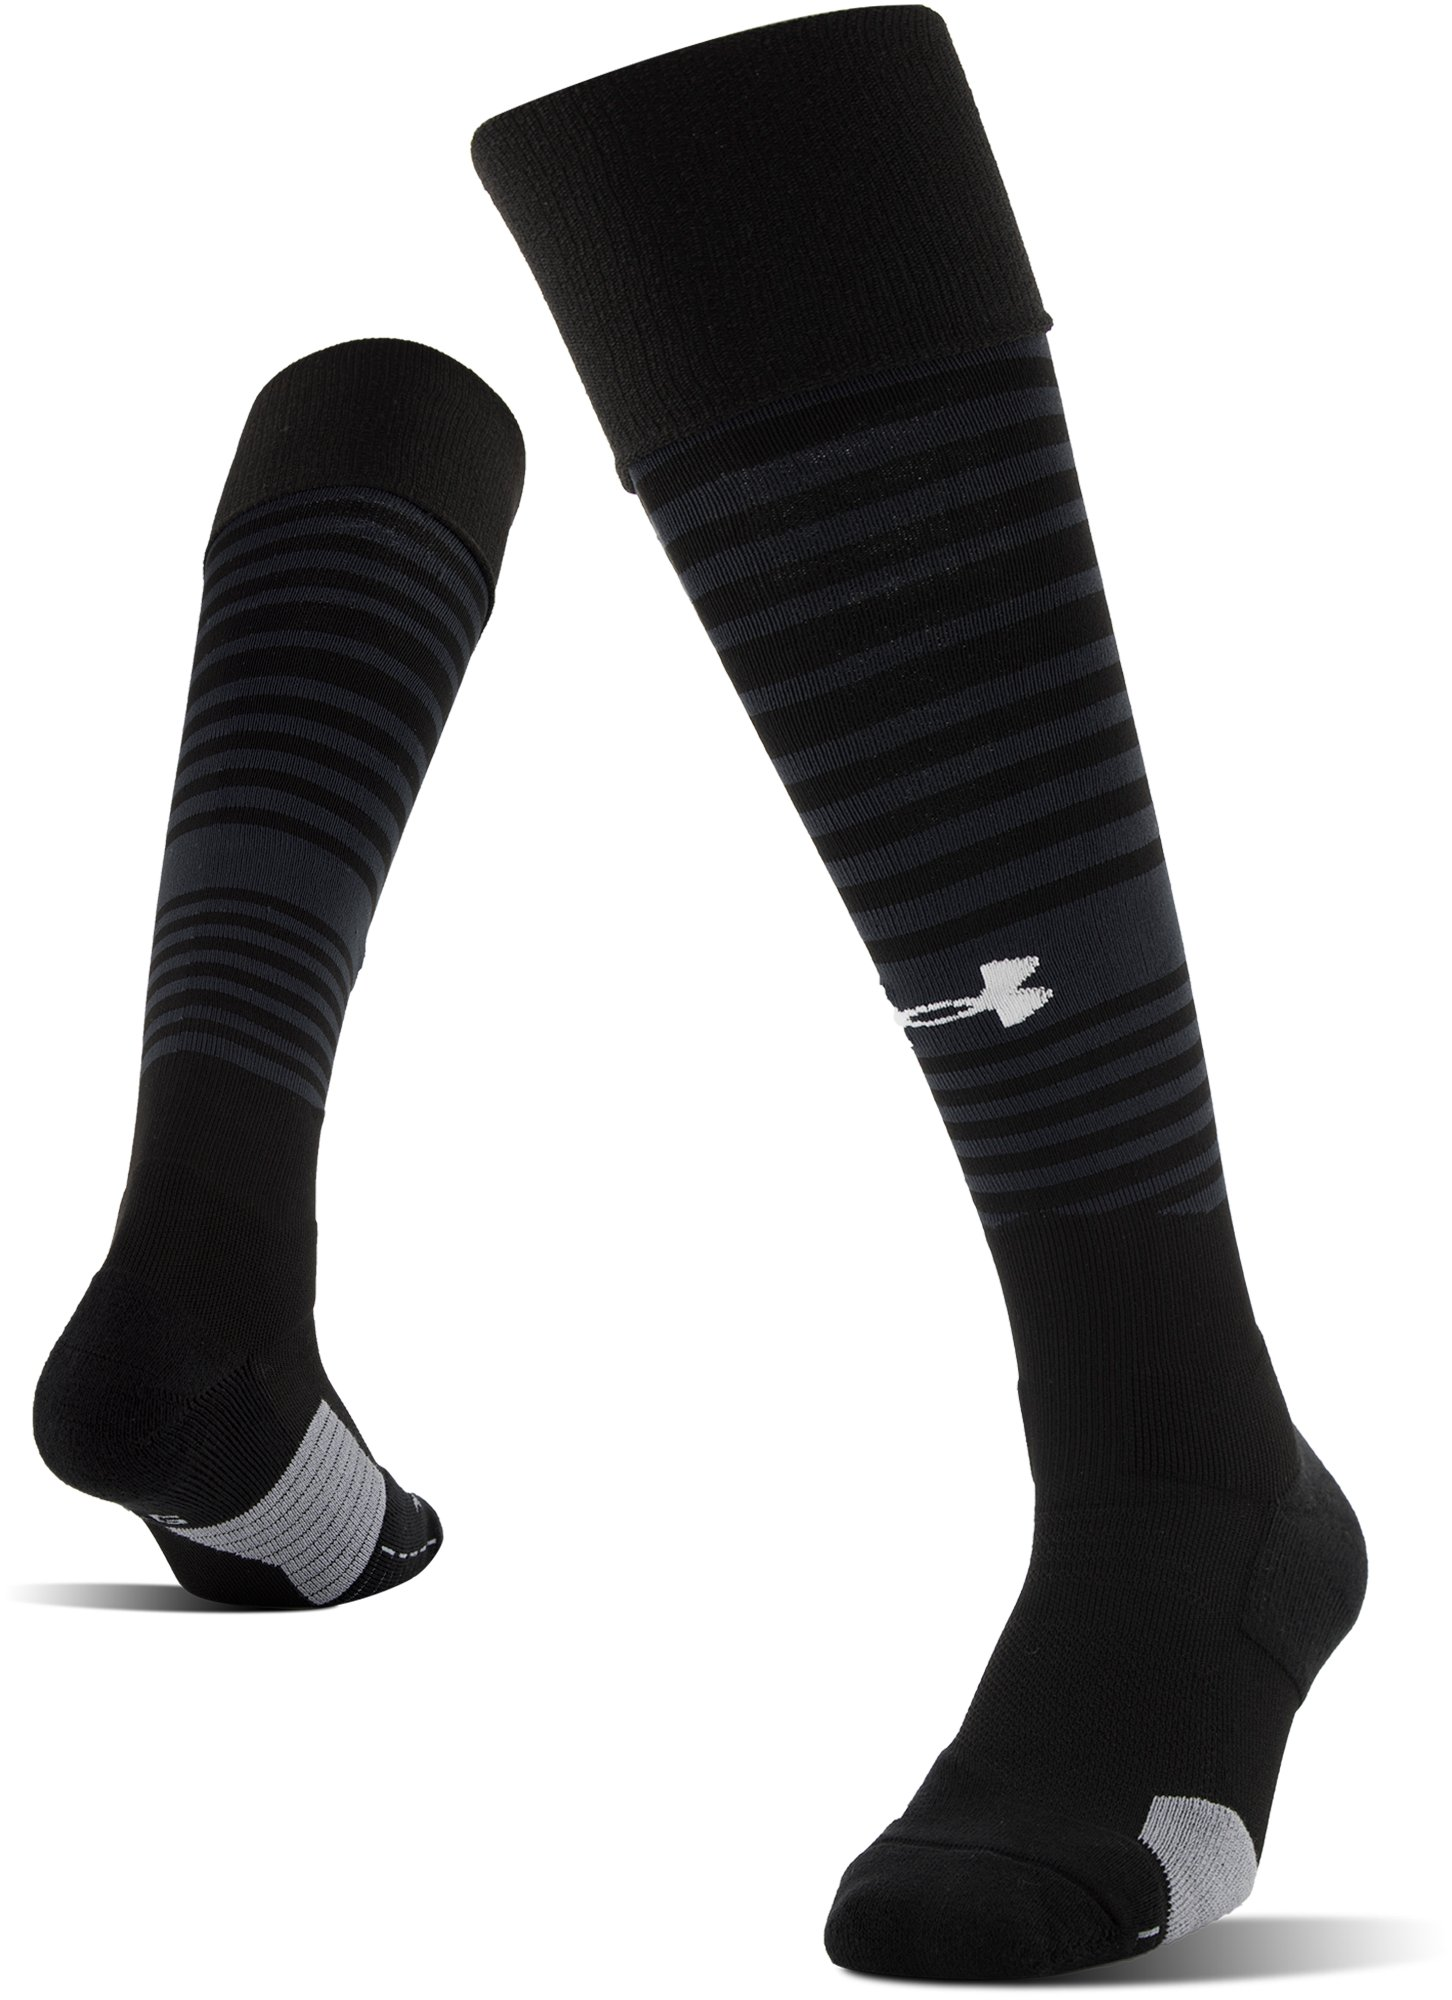 UA Global Performance Over-The-Calf Soccer Socks, Black